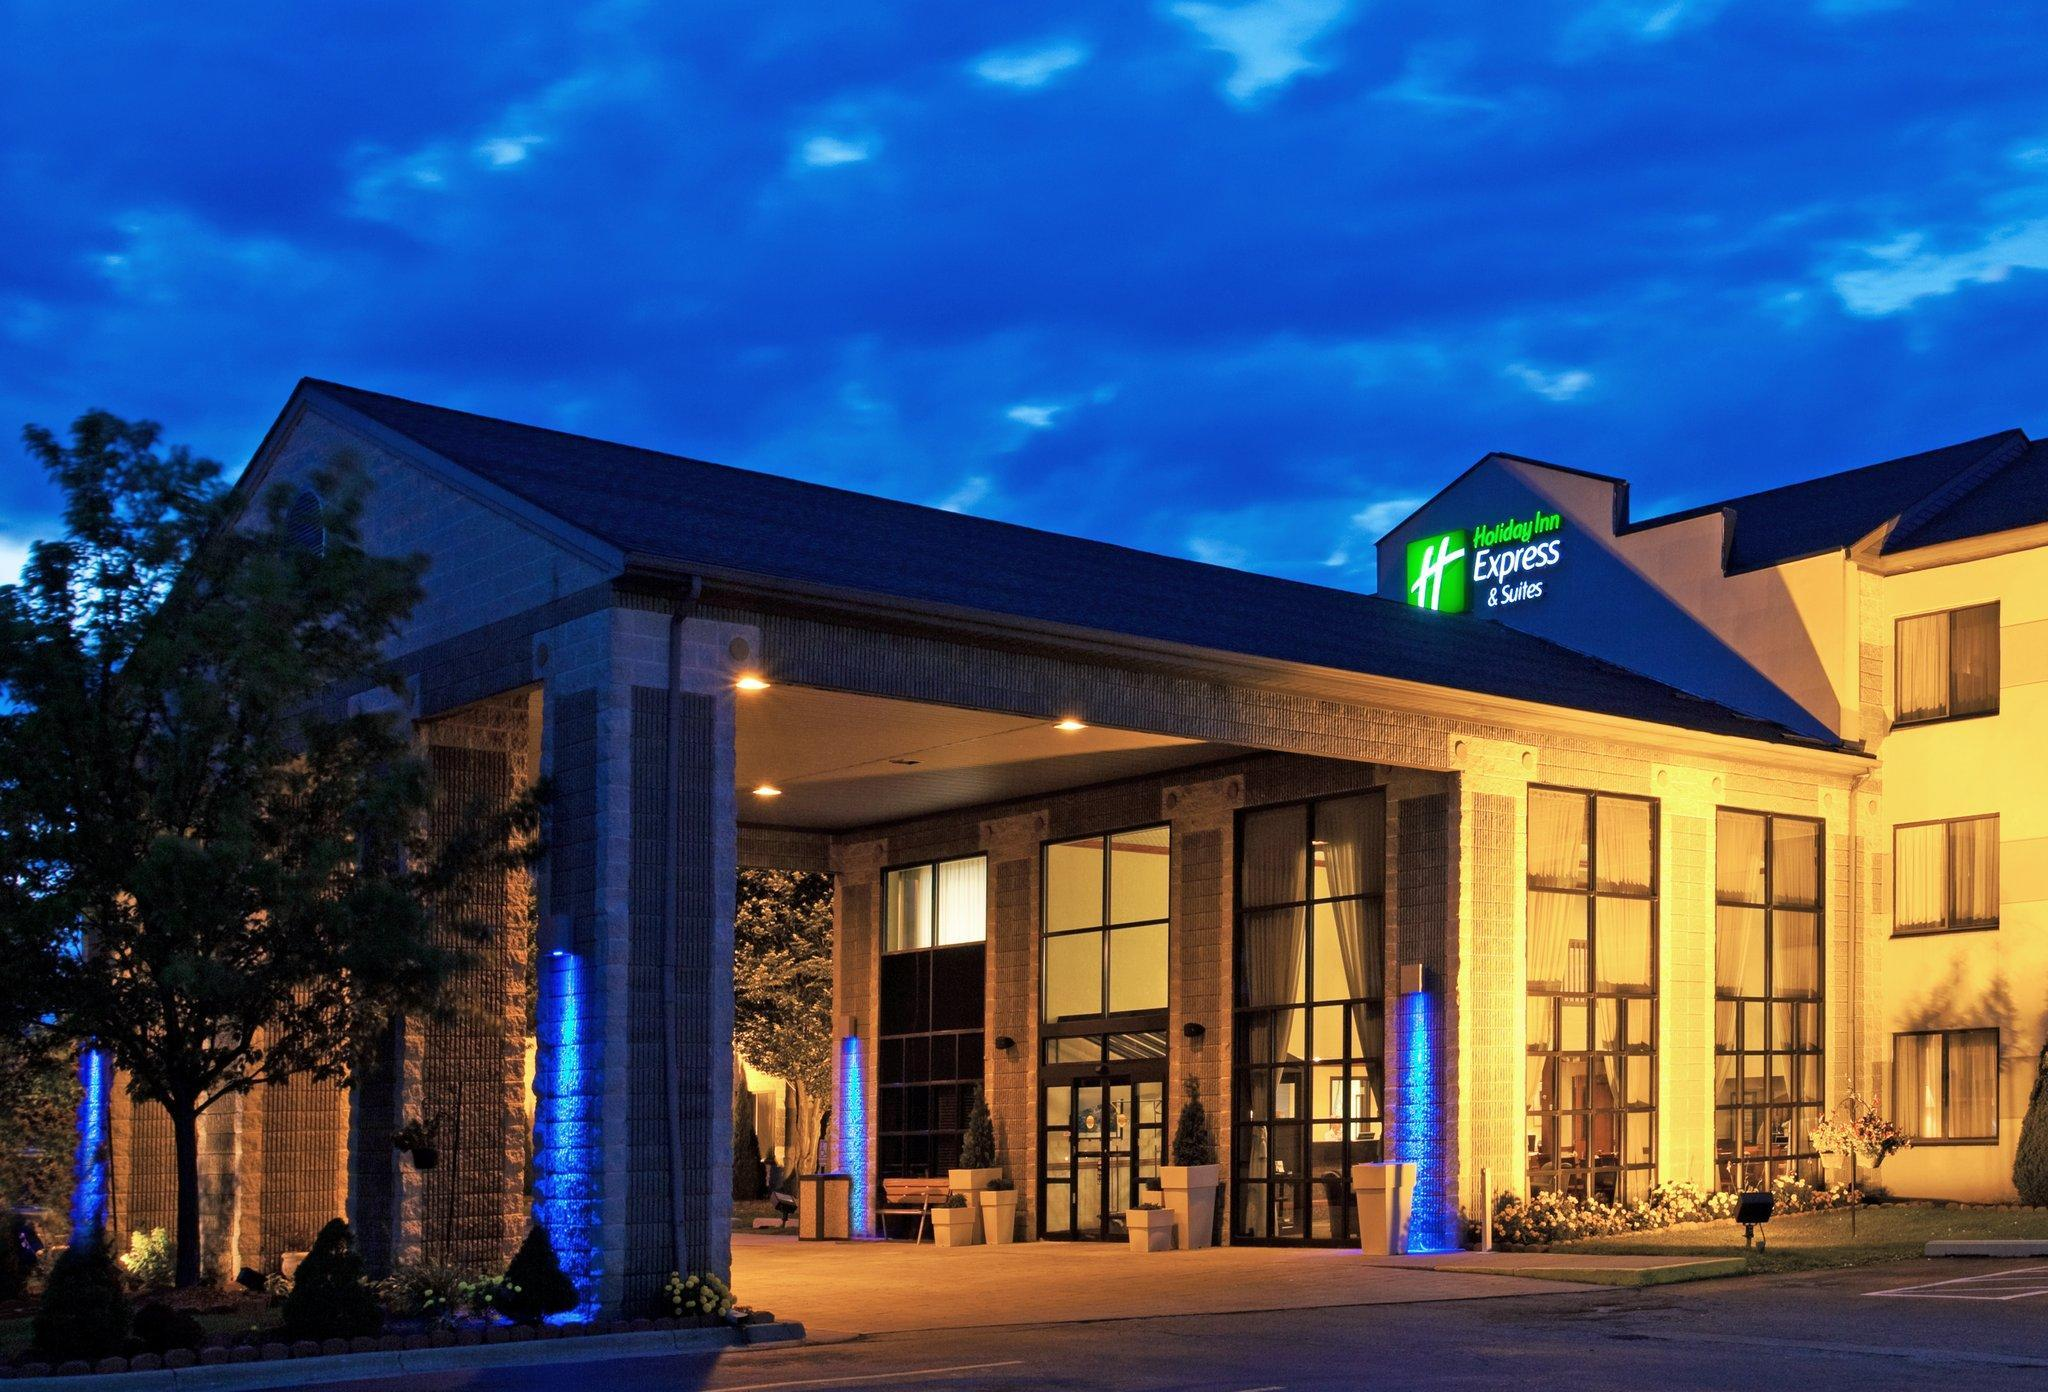 Candlewood Suites Grand Rapids Airport